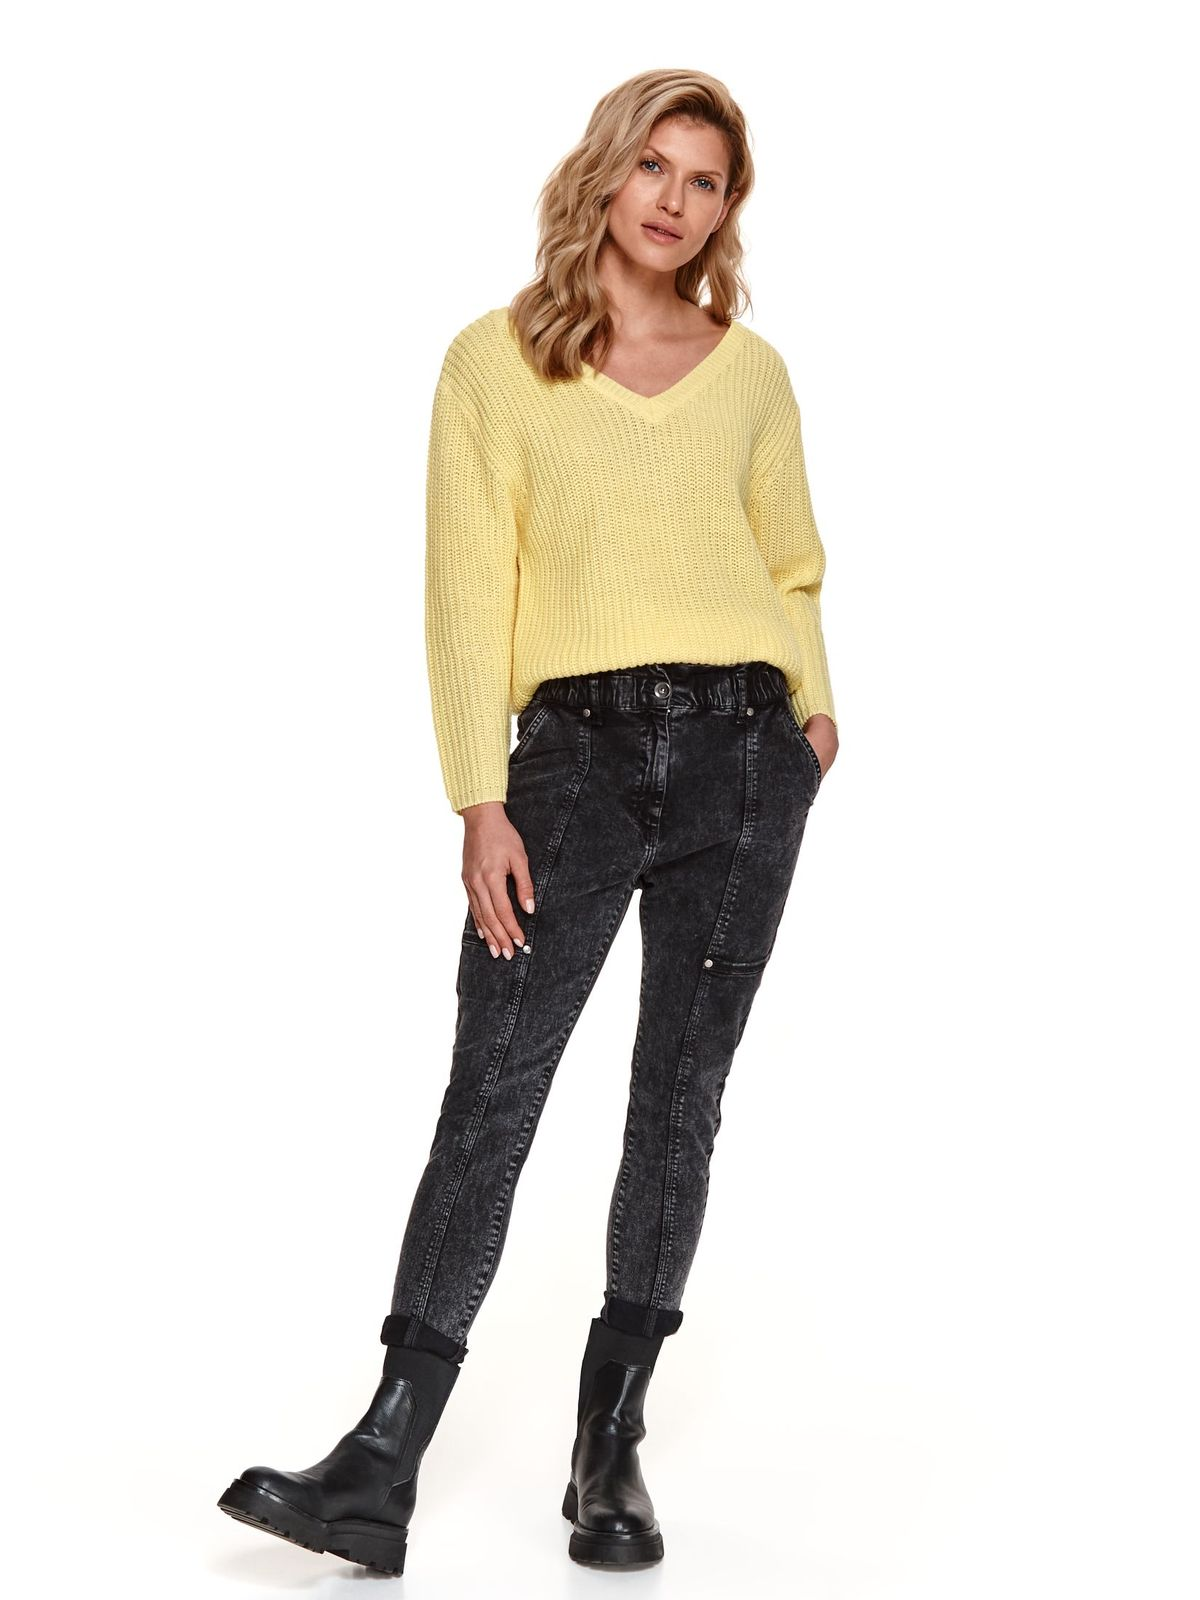 Grey trousers denim high waisted conical